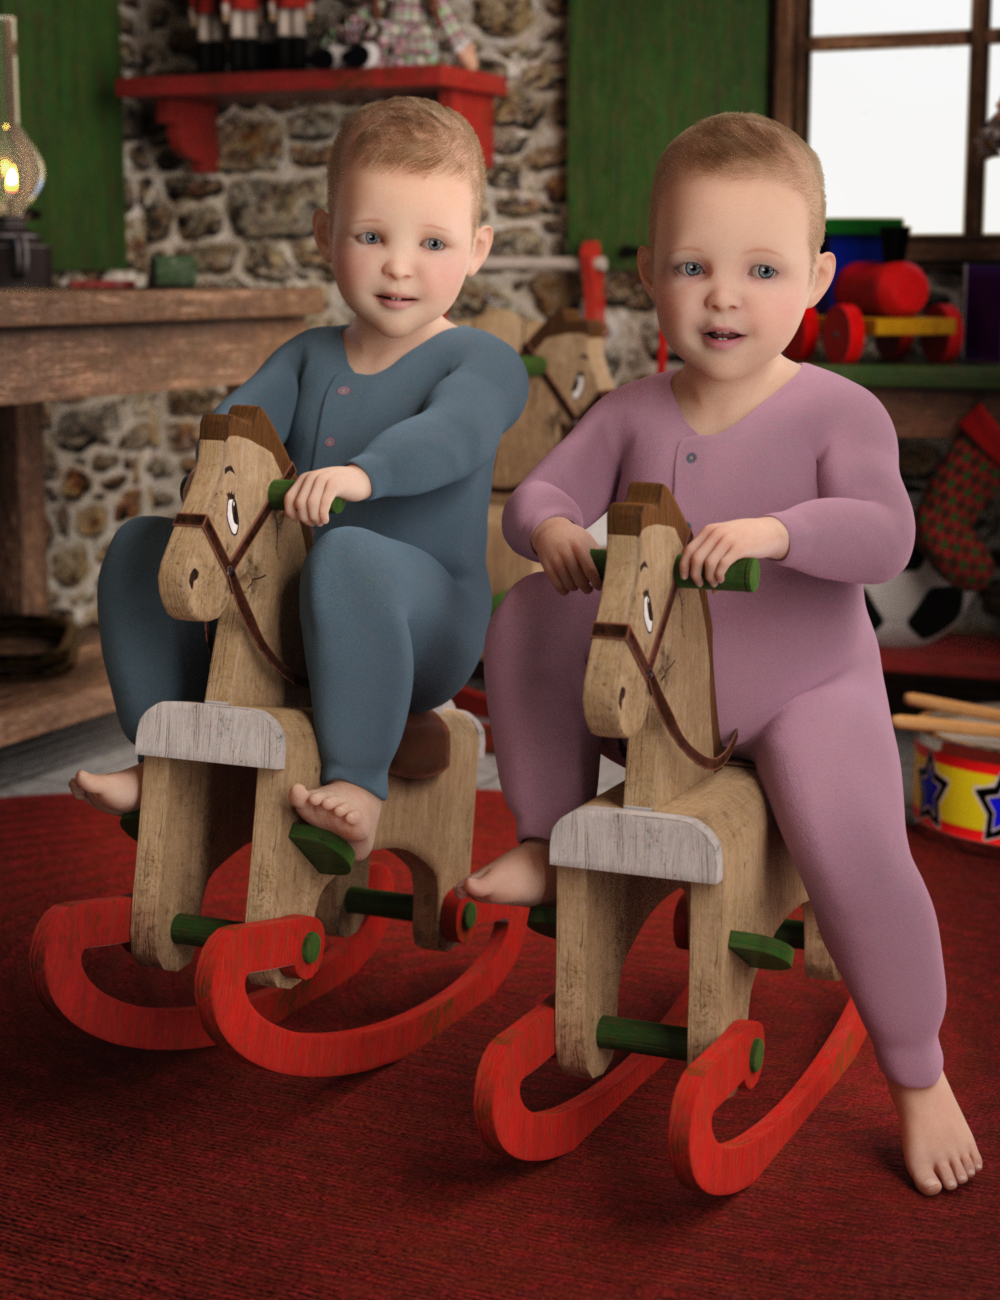 Toddler Twins For Genesis 8 by: Deepsea, 3D Models by Daz 3D